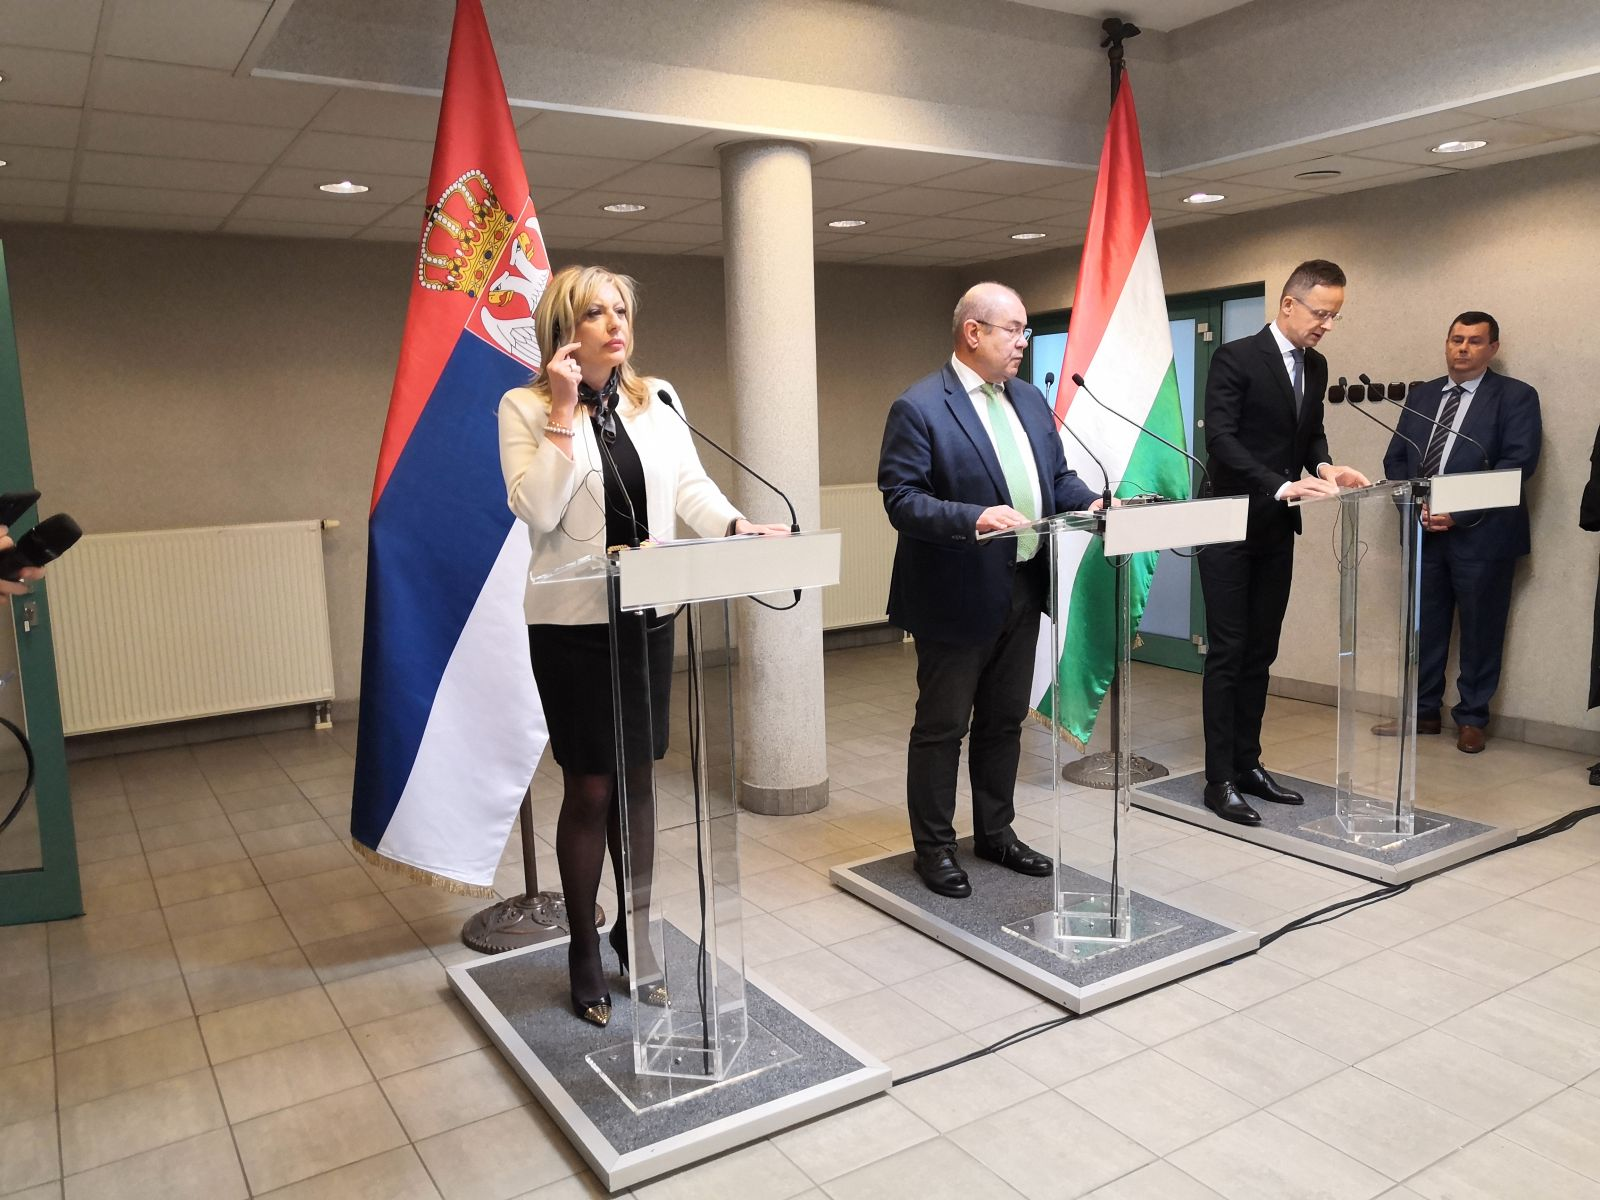 J. Joksimović: Opening borders with Hungary – important for citizens and economy